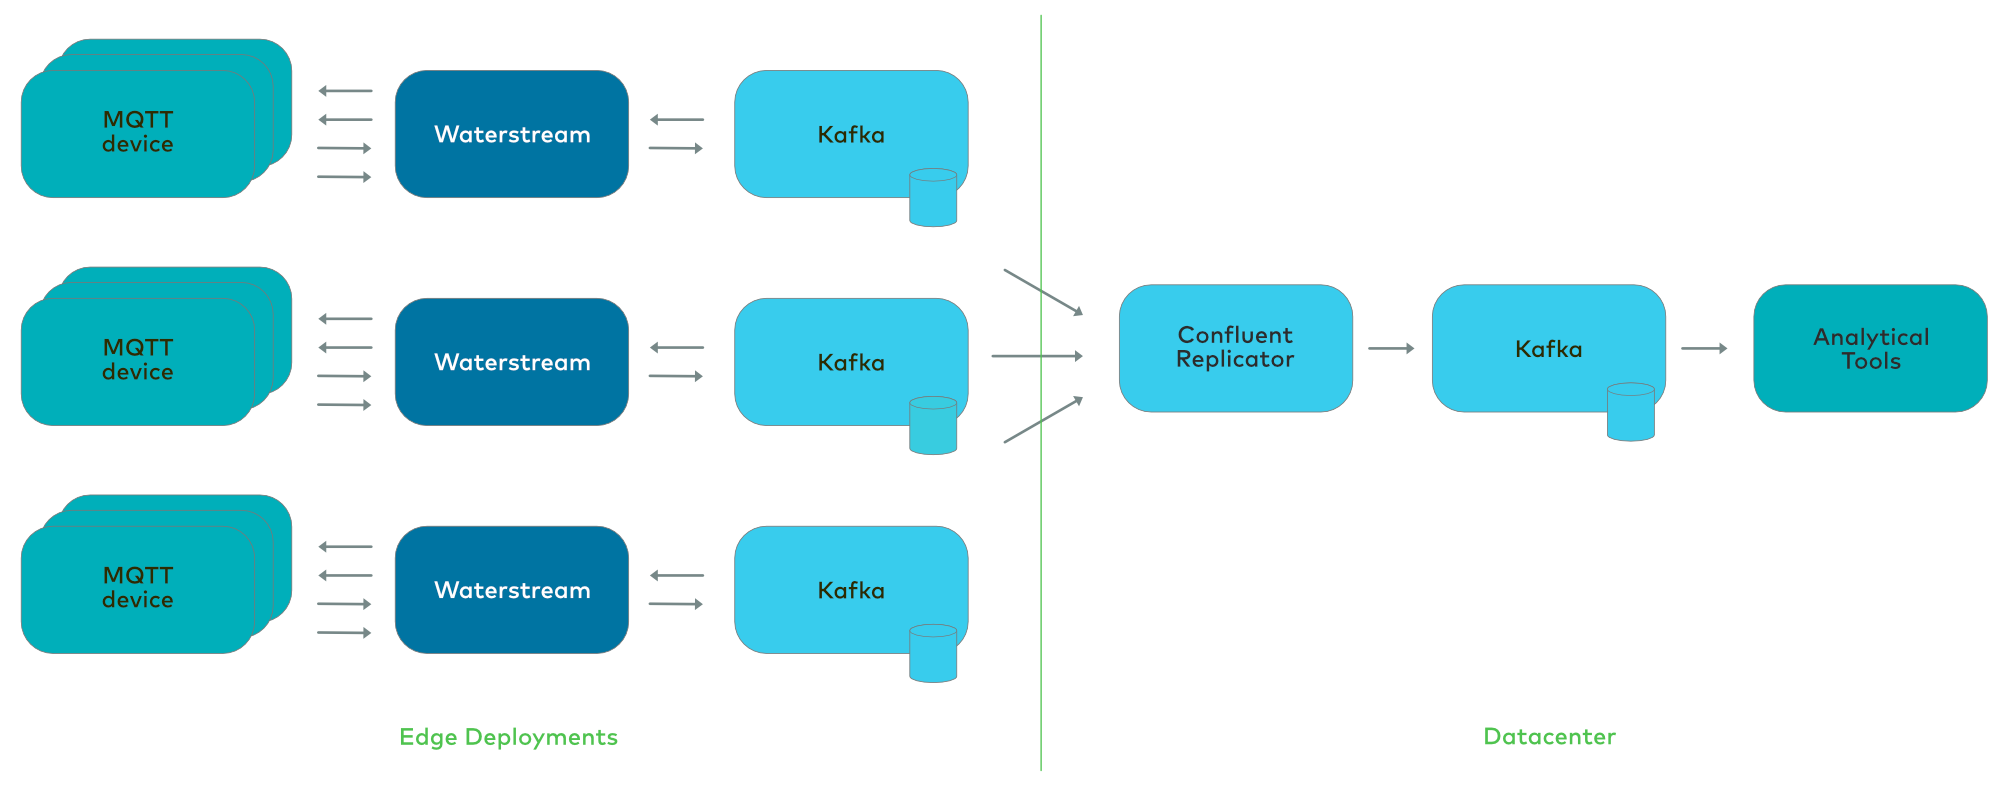 MQTT, Waterstream, and Kafka: Edge Deployments | Datacenter